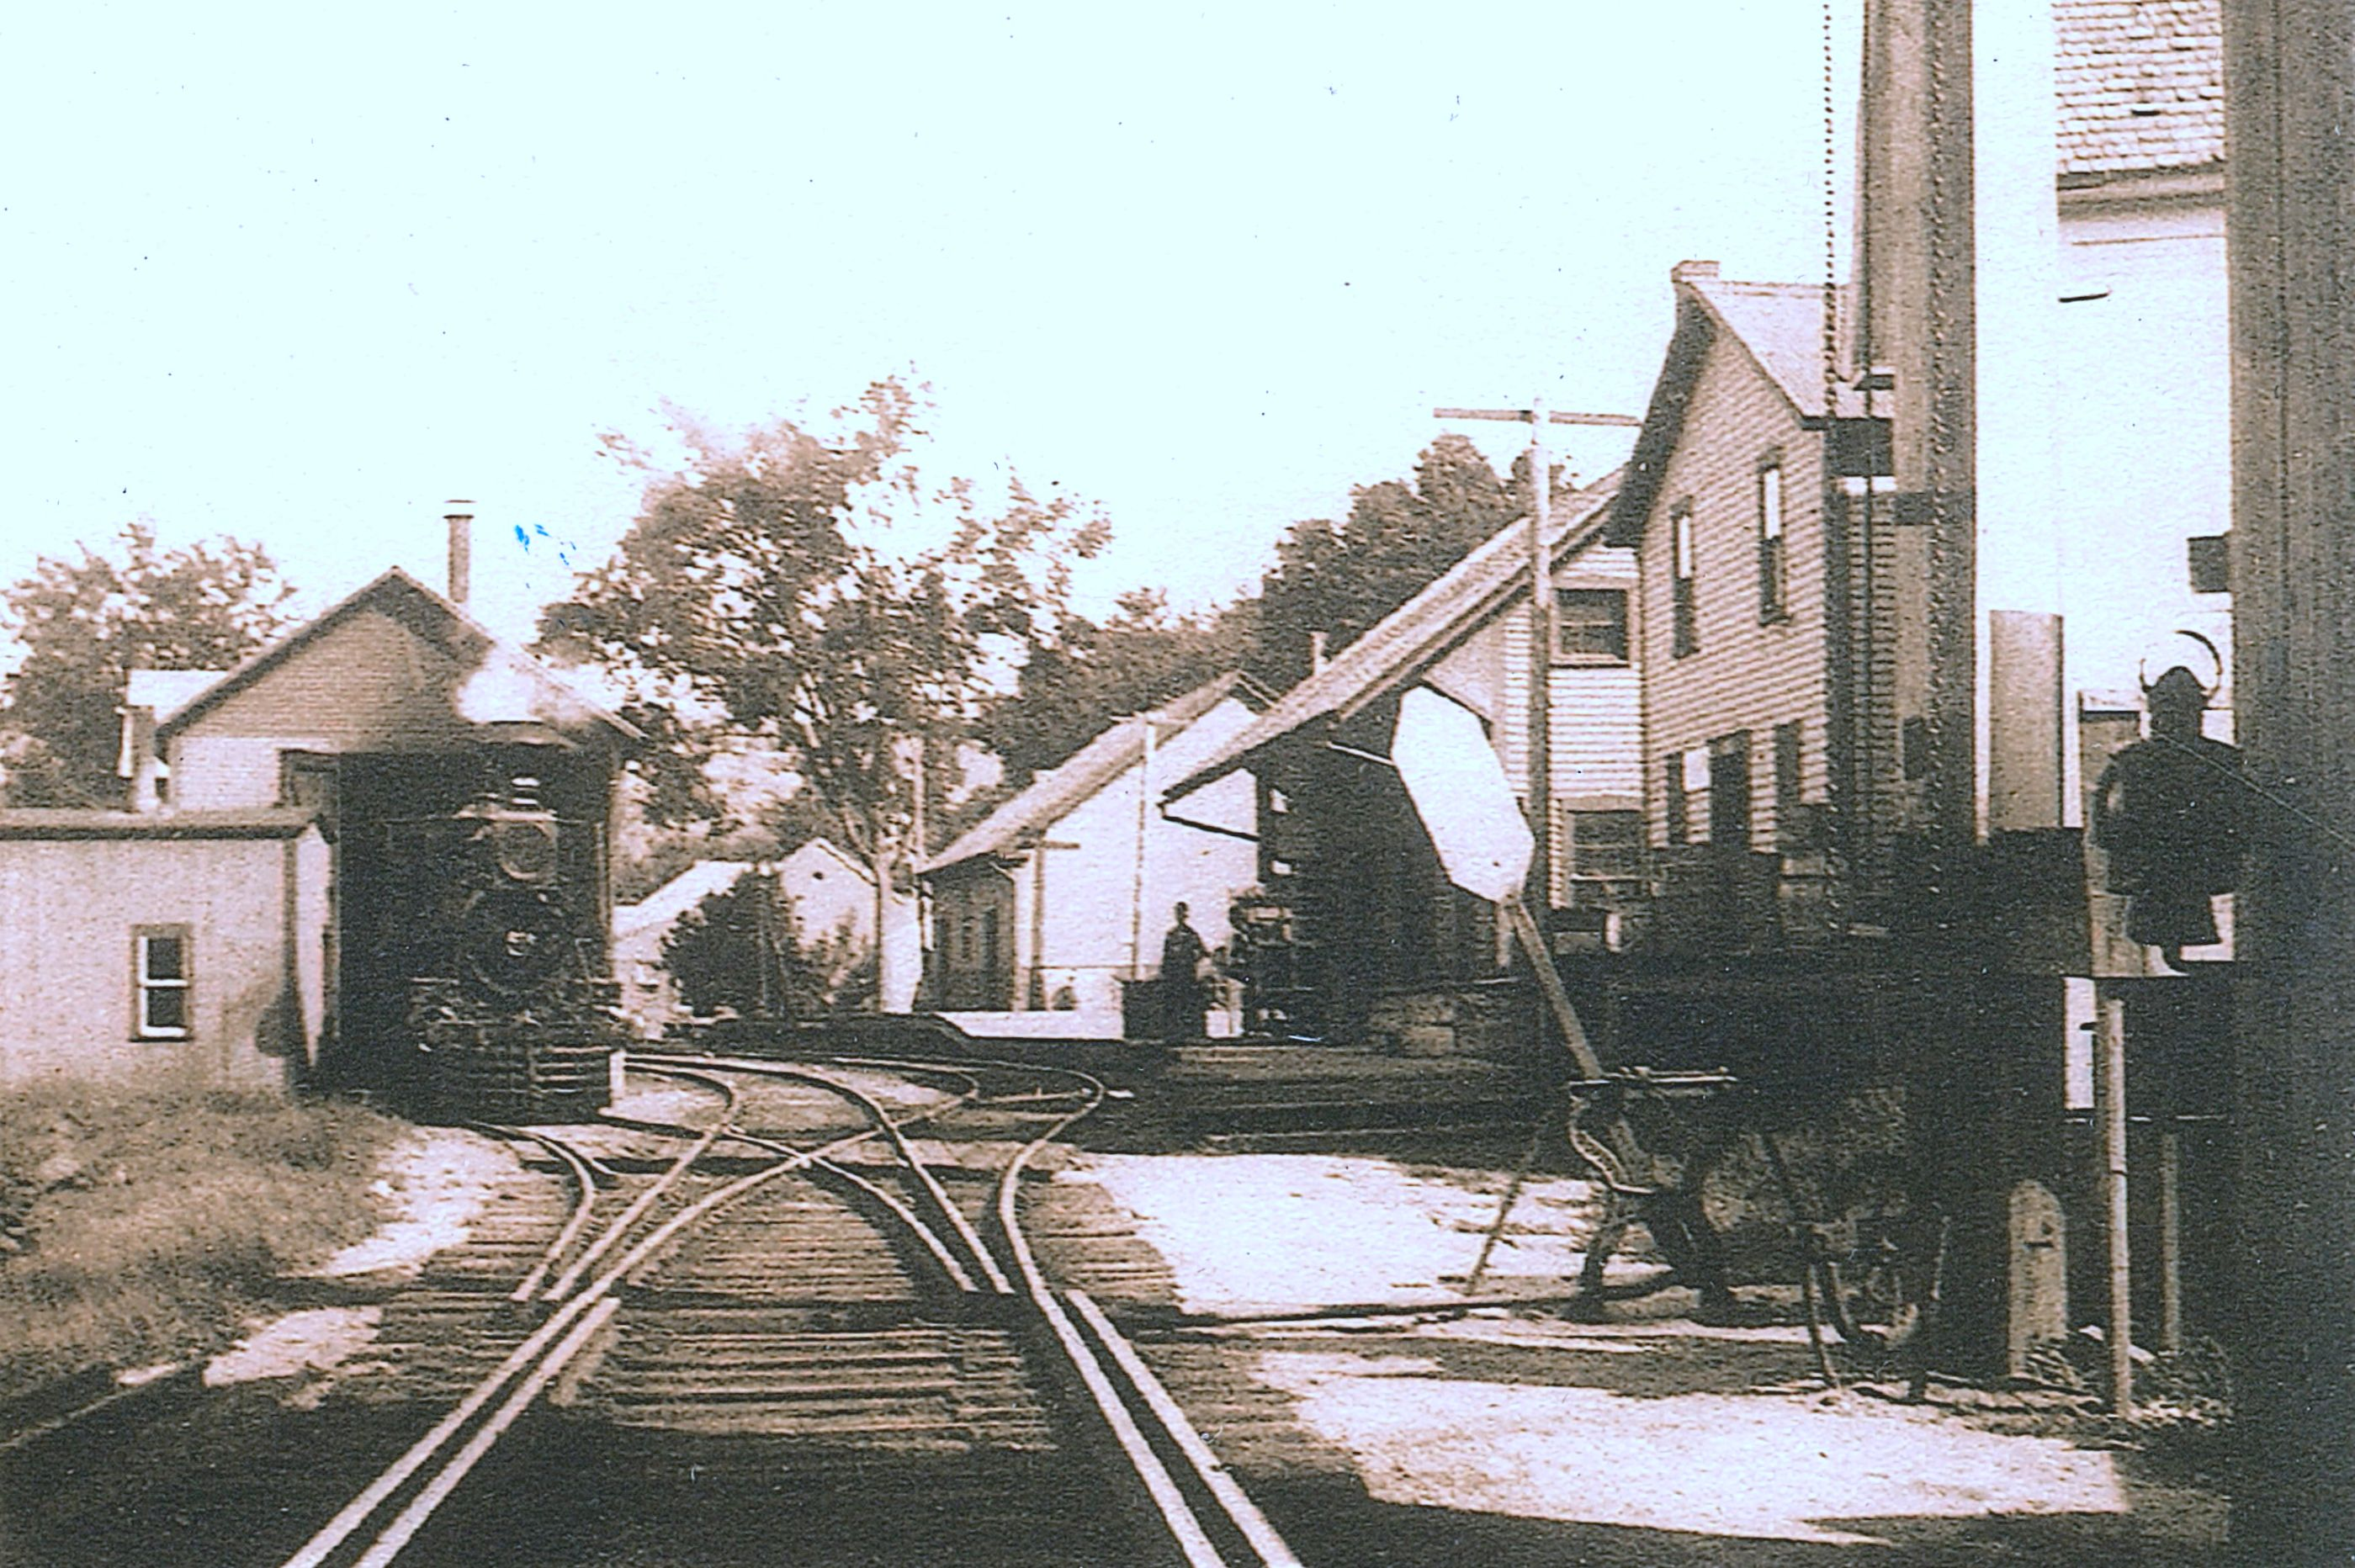 This undated photograph shows the Depot on the right, in about the middle of the photo.  Just beyond the Depot is the freight house.